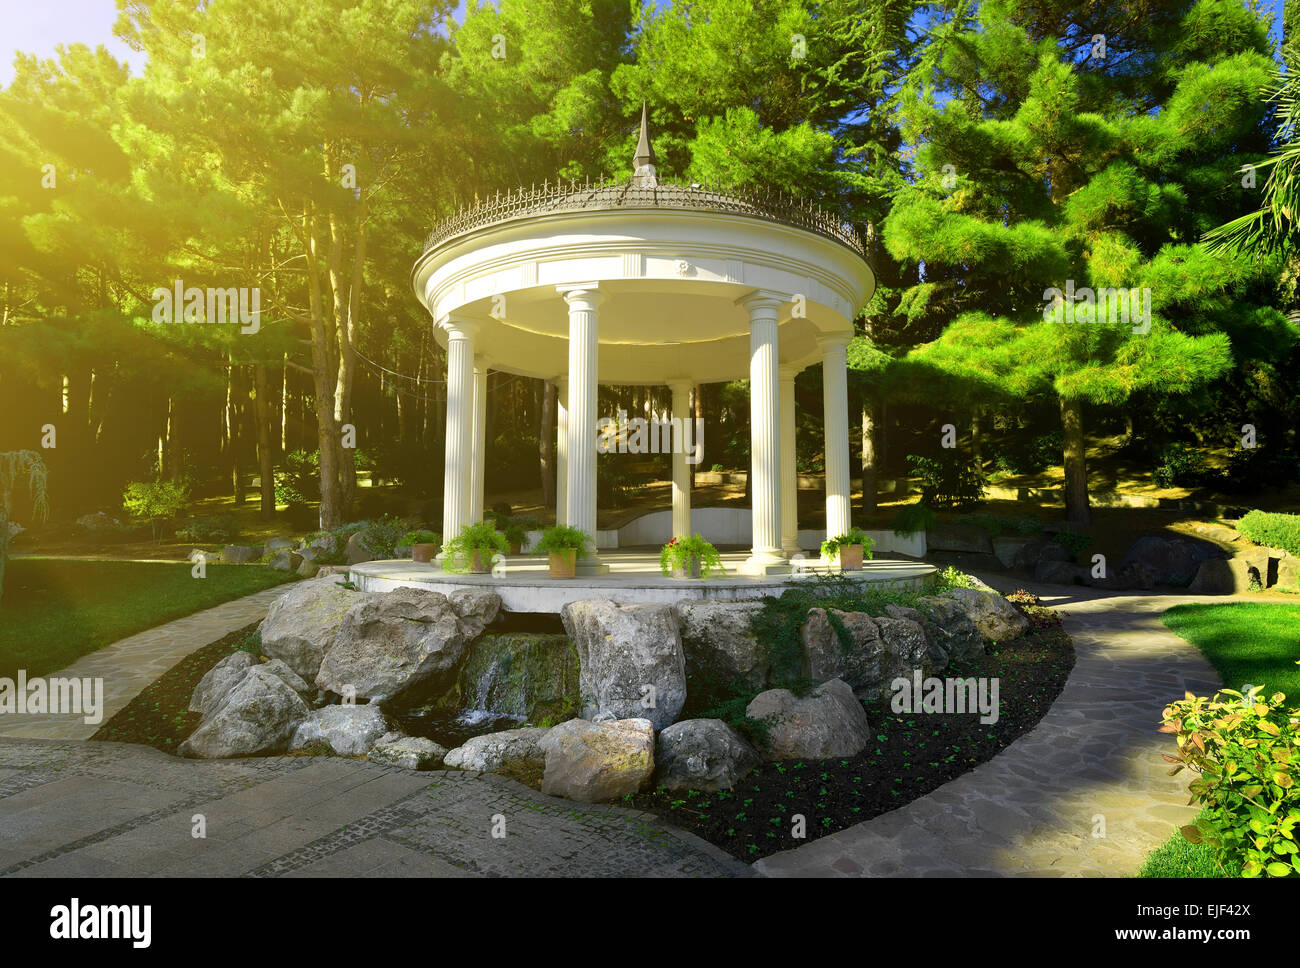 White bower among the coniferous trees in park - Stock Image